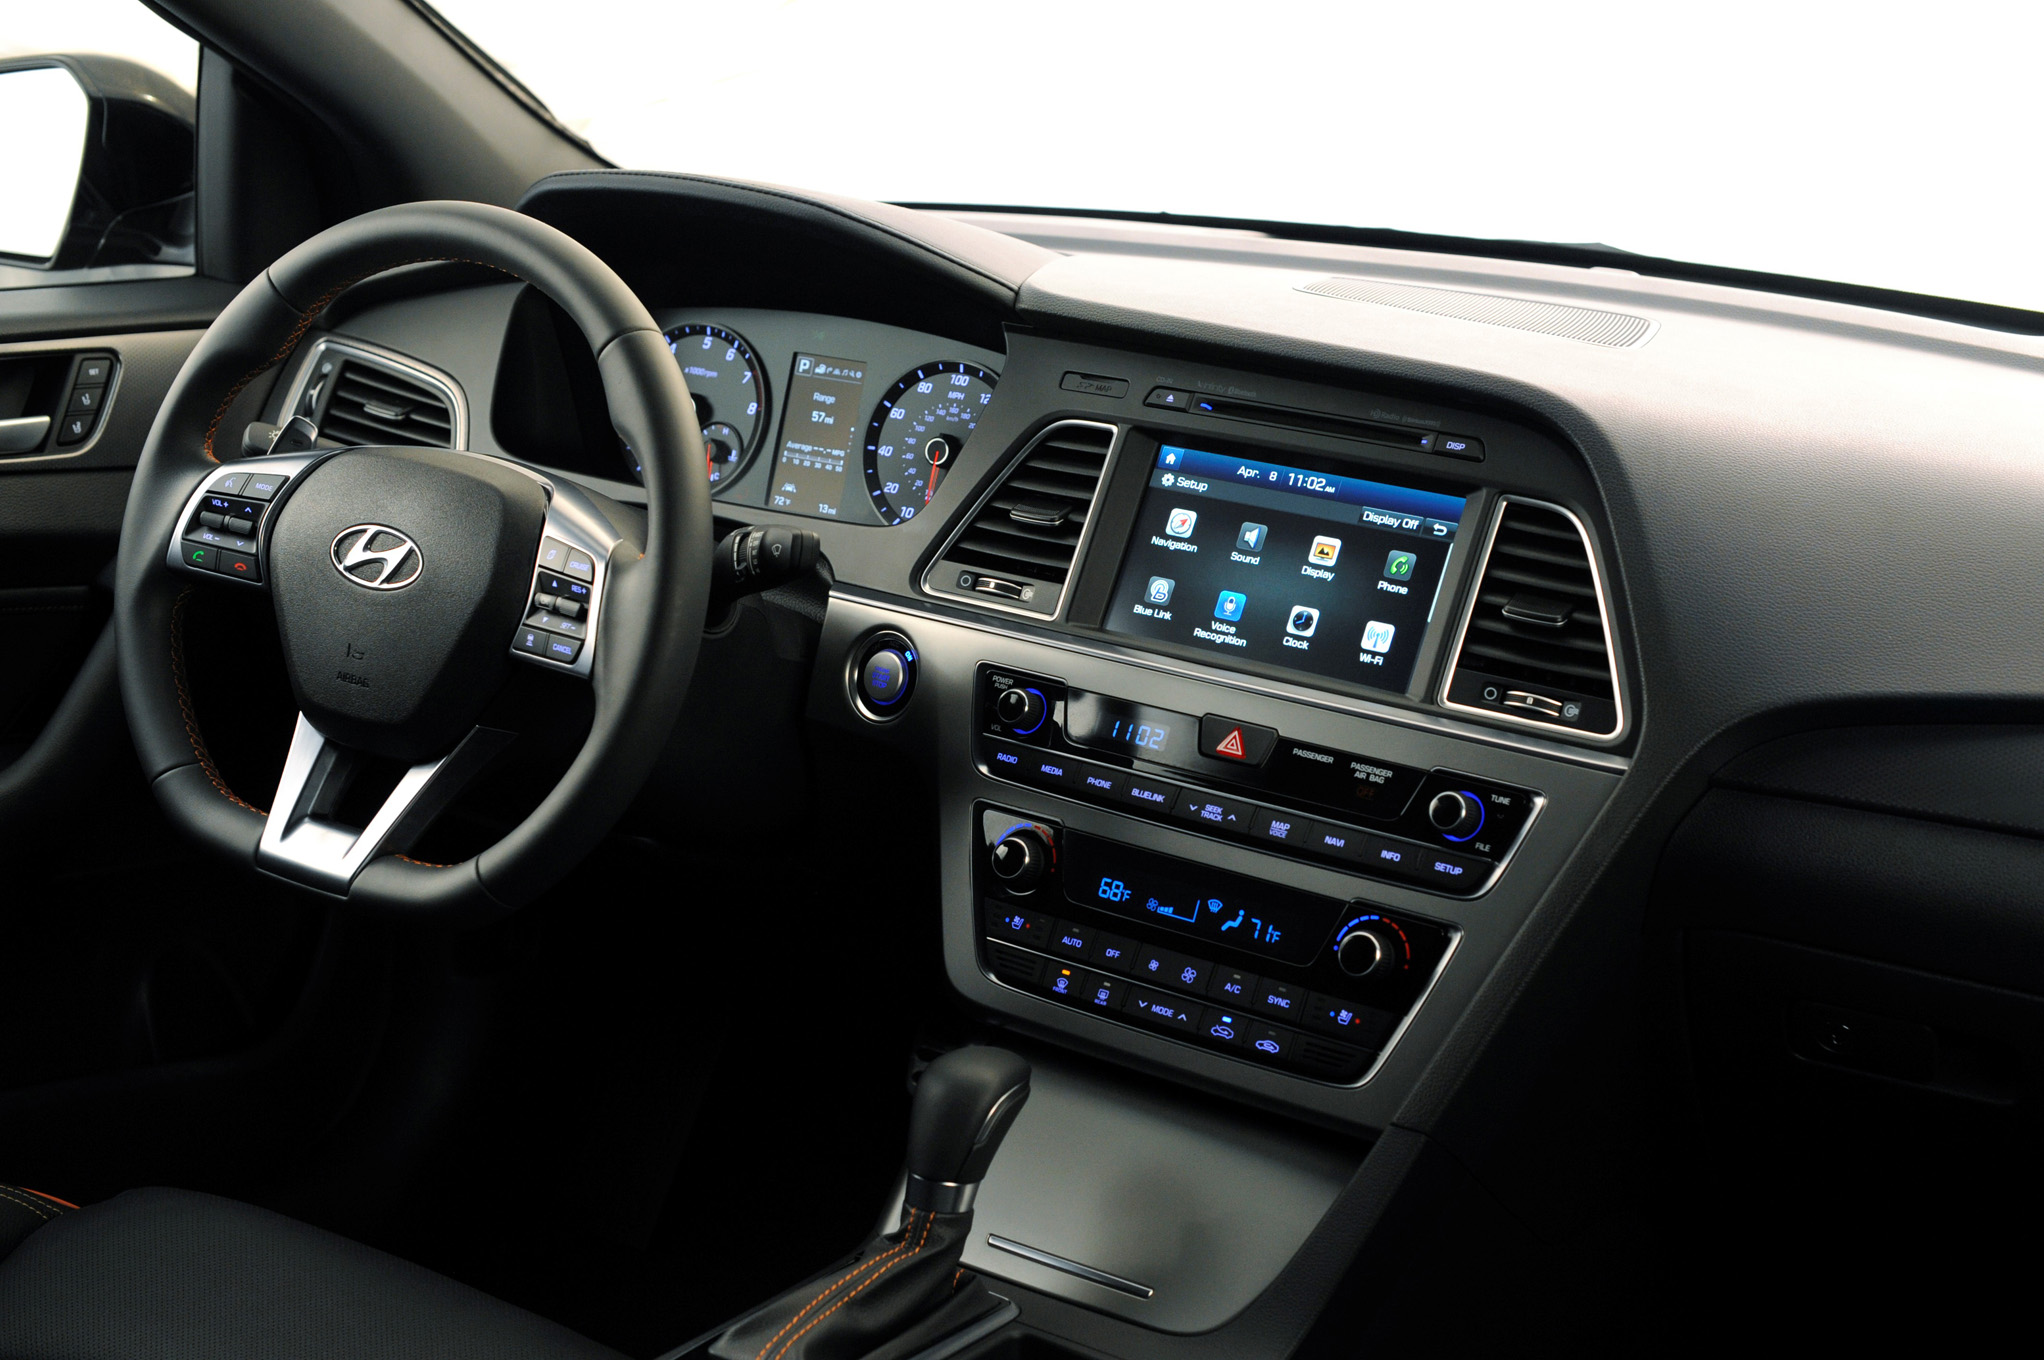 2015 Hyundai Sonata Dash and Head Unit